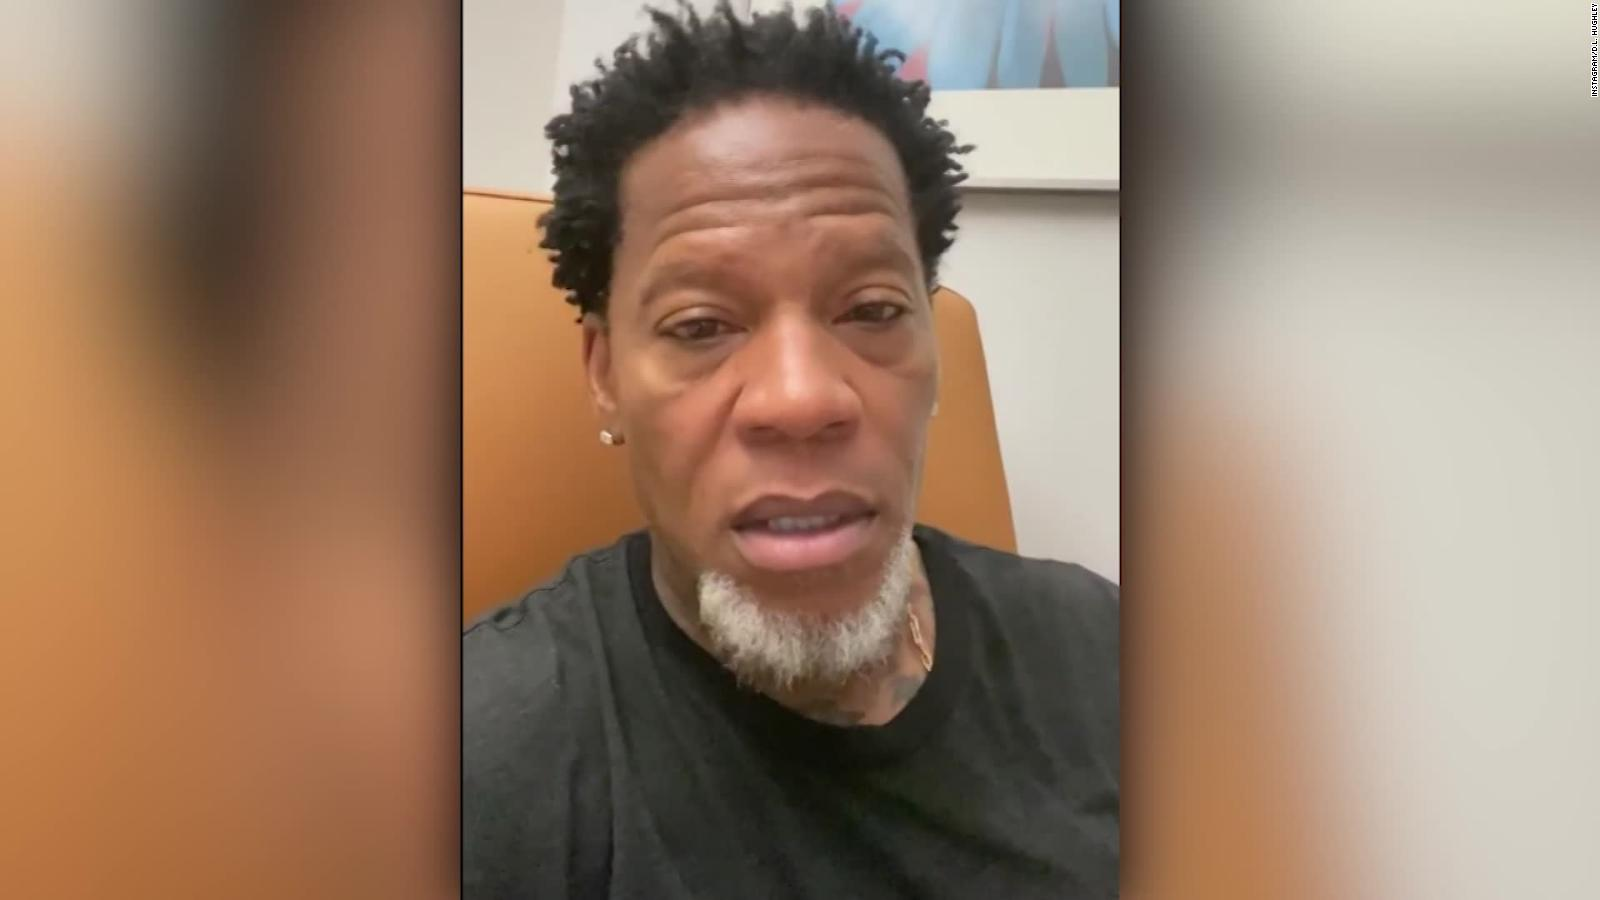 D.L. Hughley tests positive for Covid-19 after collapse - CNN Video